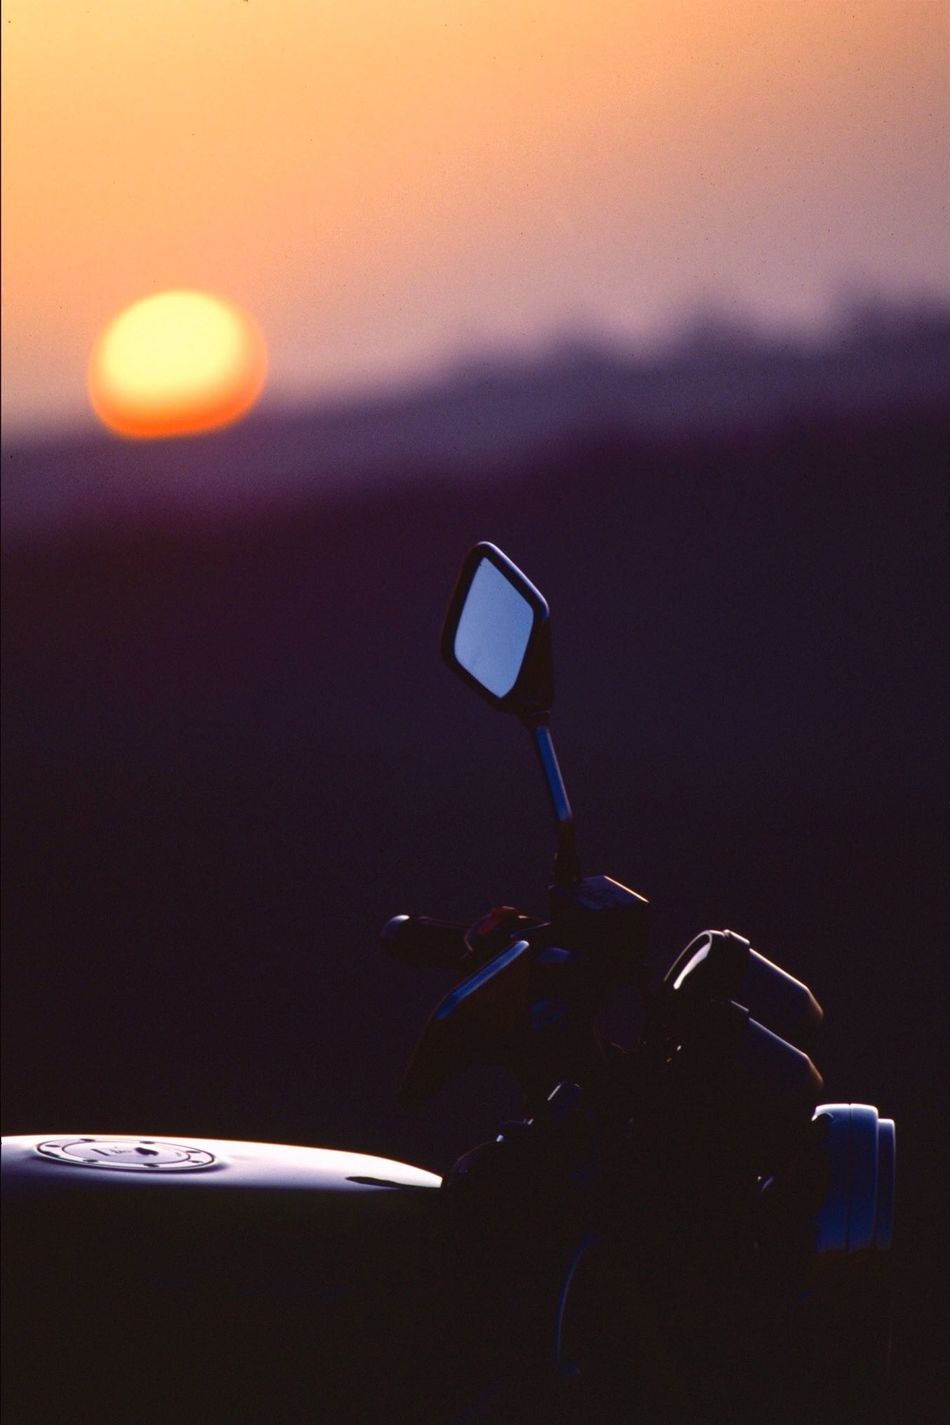 A profile of my old friend. Getting Inspired Check This Out Motorcycles Sunset Autumn Light And Shadow Melting Film No Filter Nostalgia